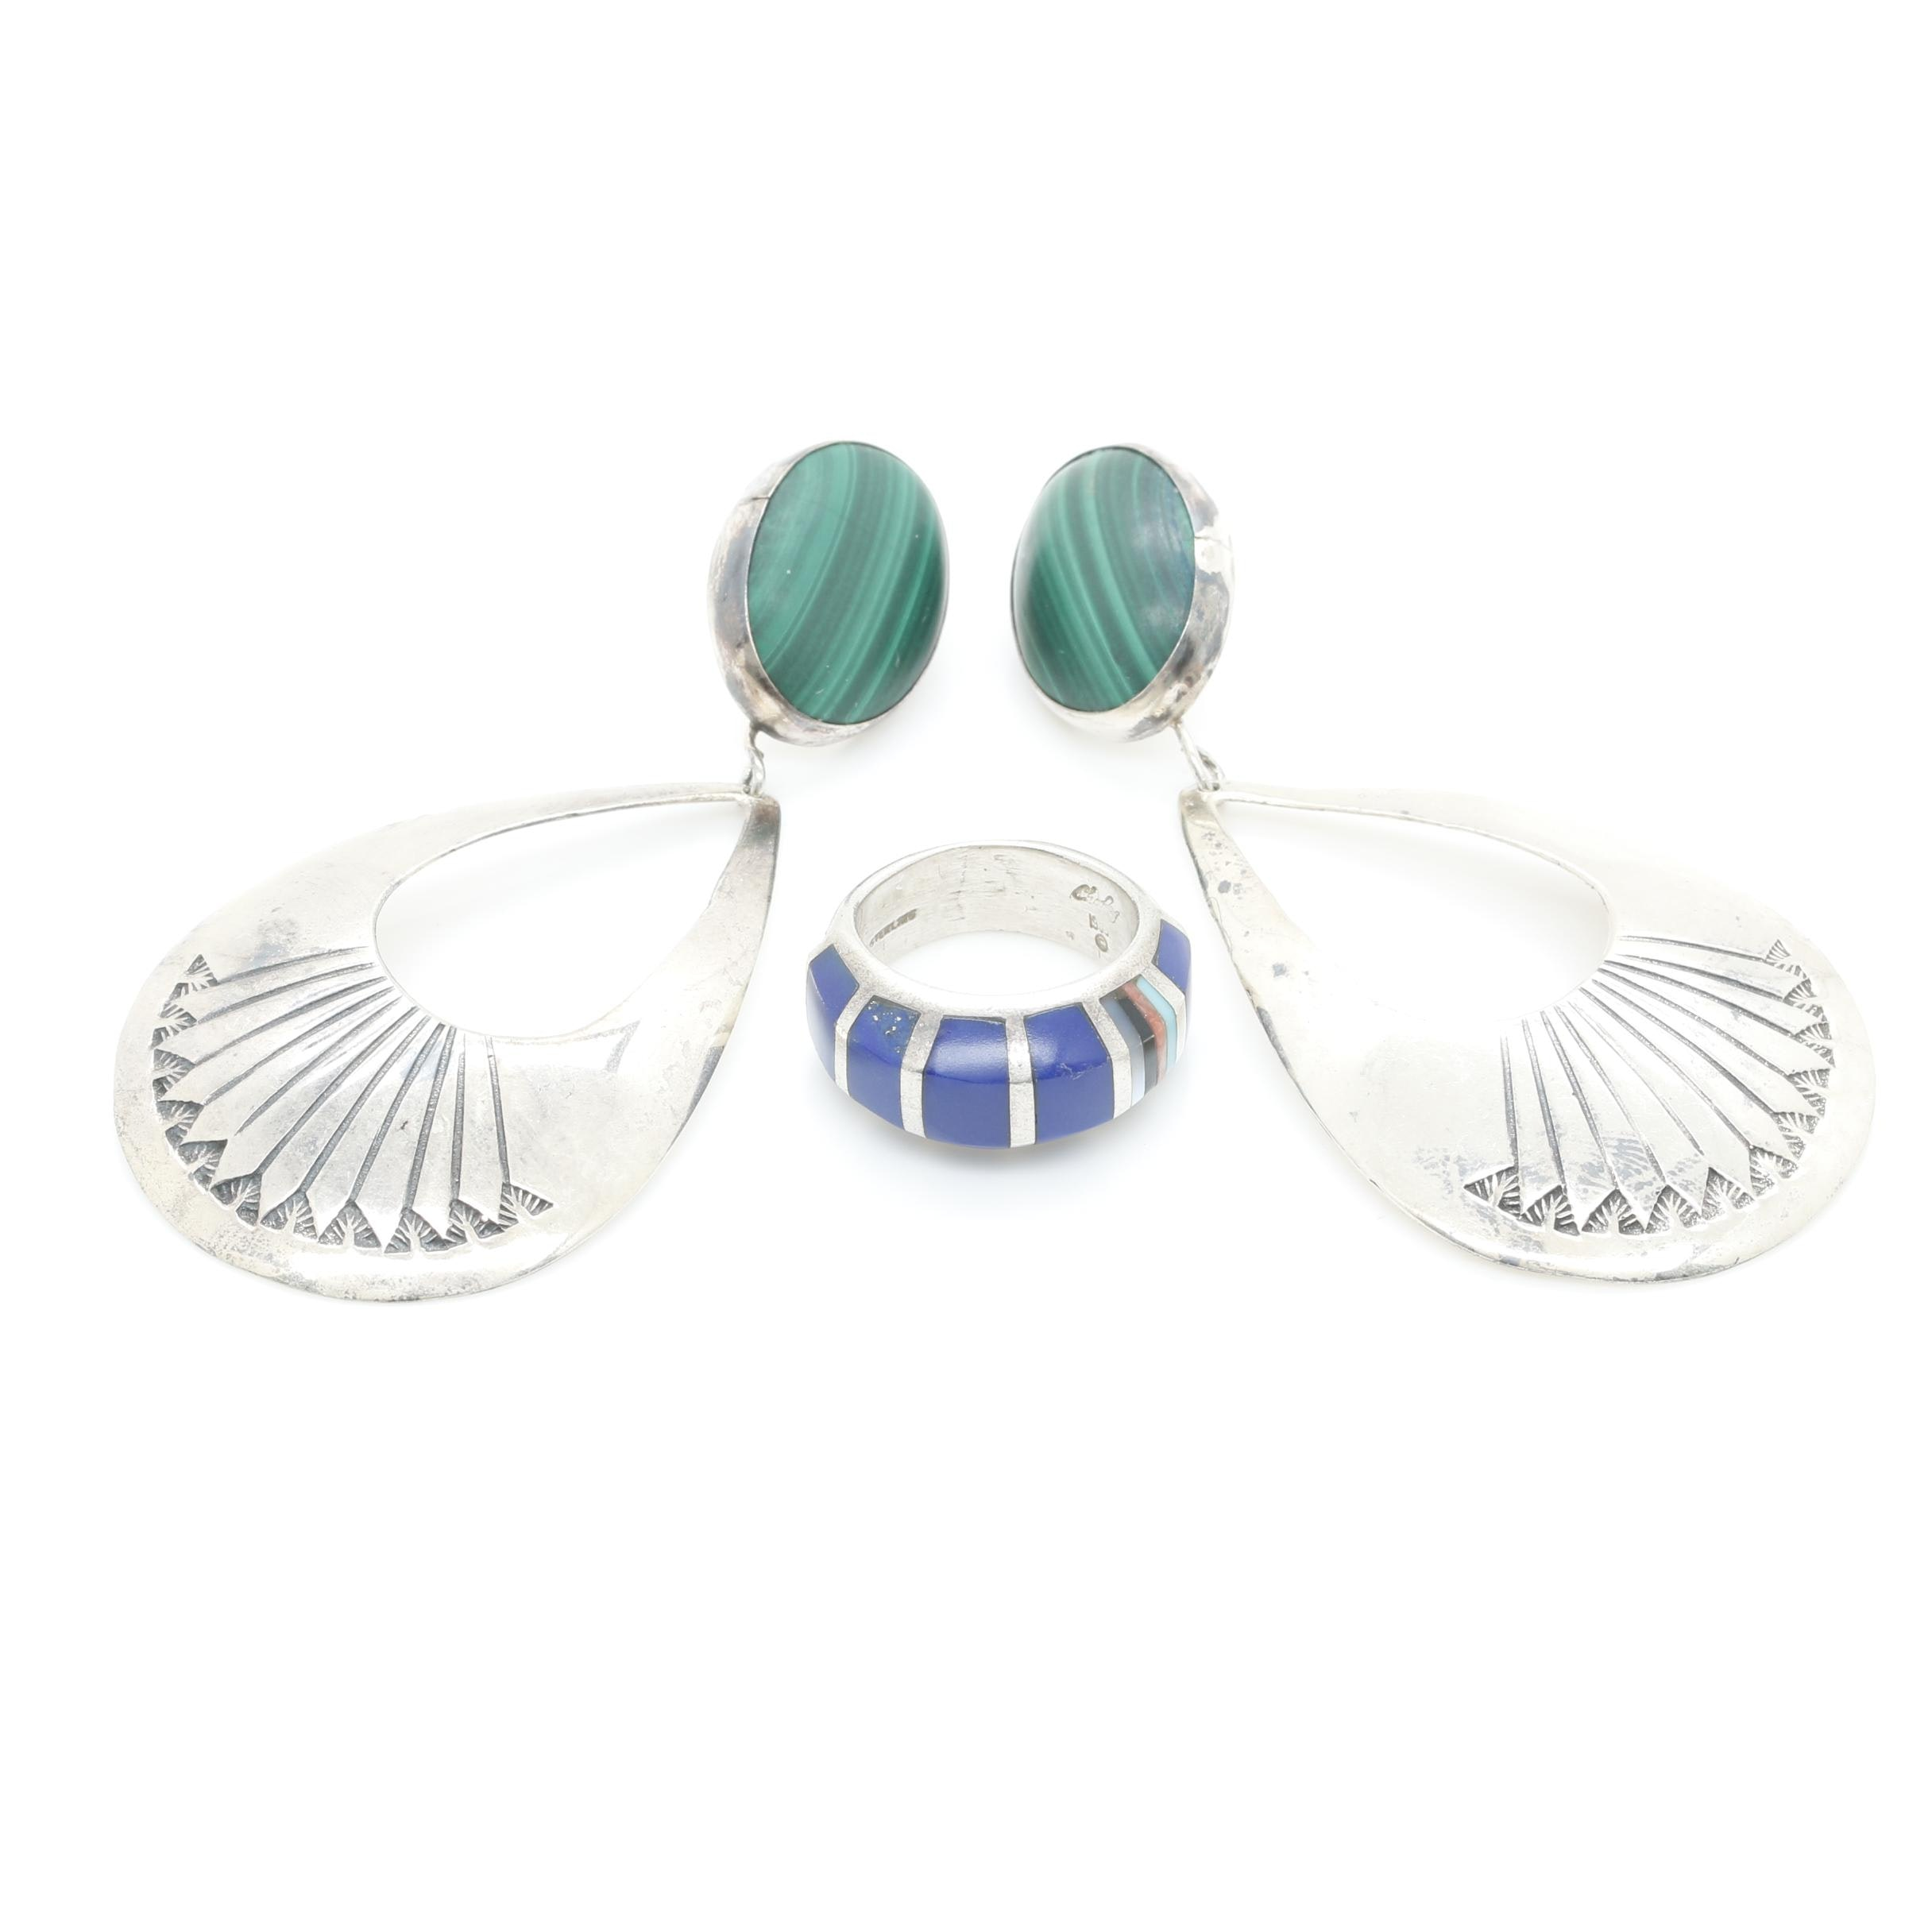 Southwestern Style Sterling Malachite Earrings and Imitation Lapis Lazuli Ring